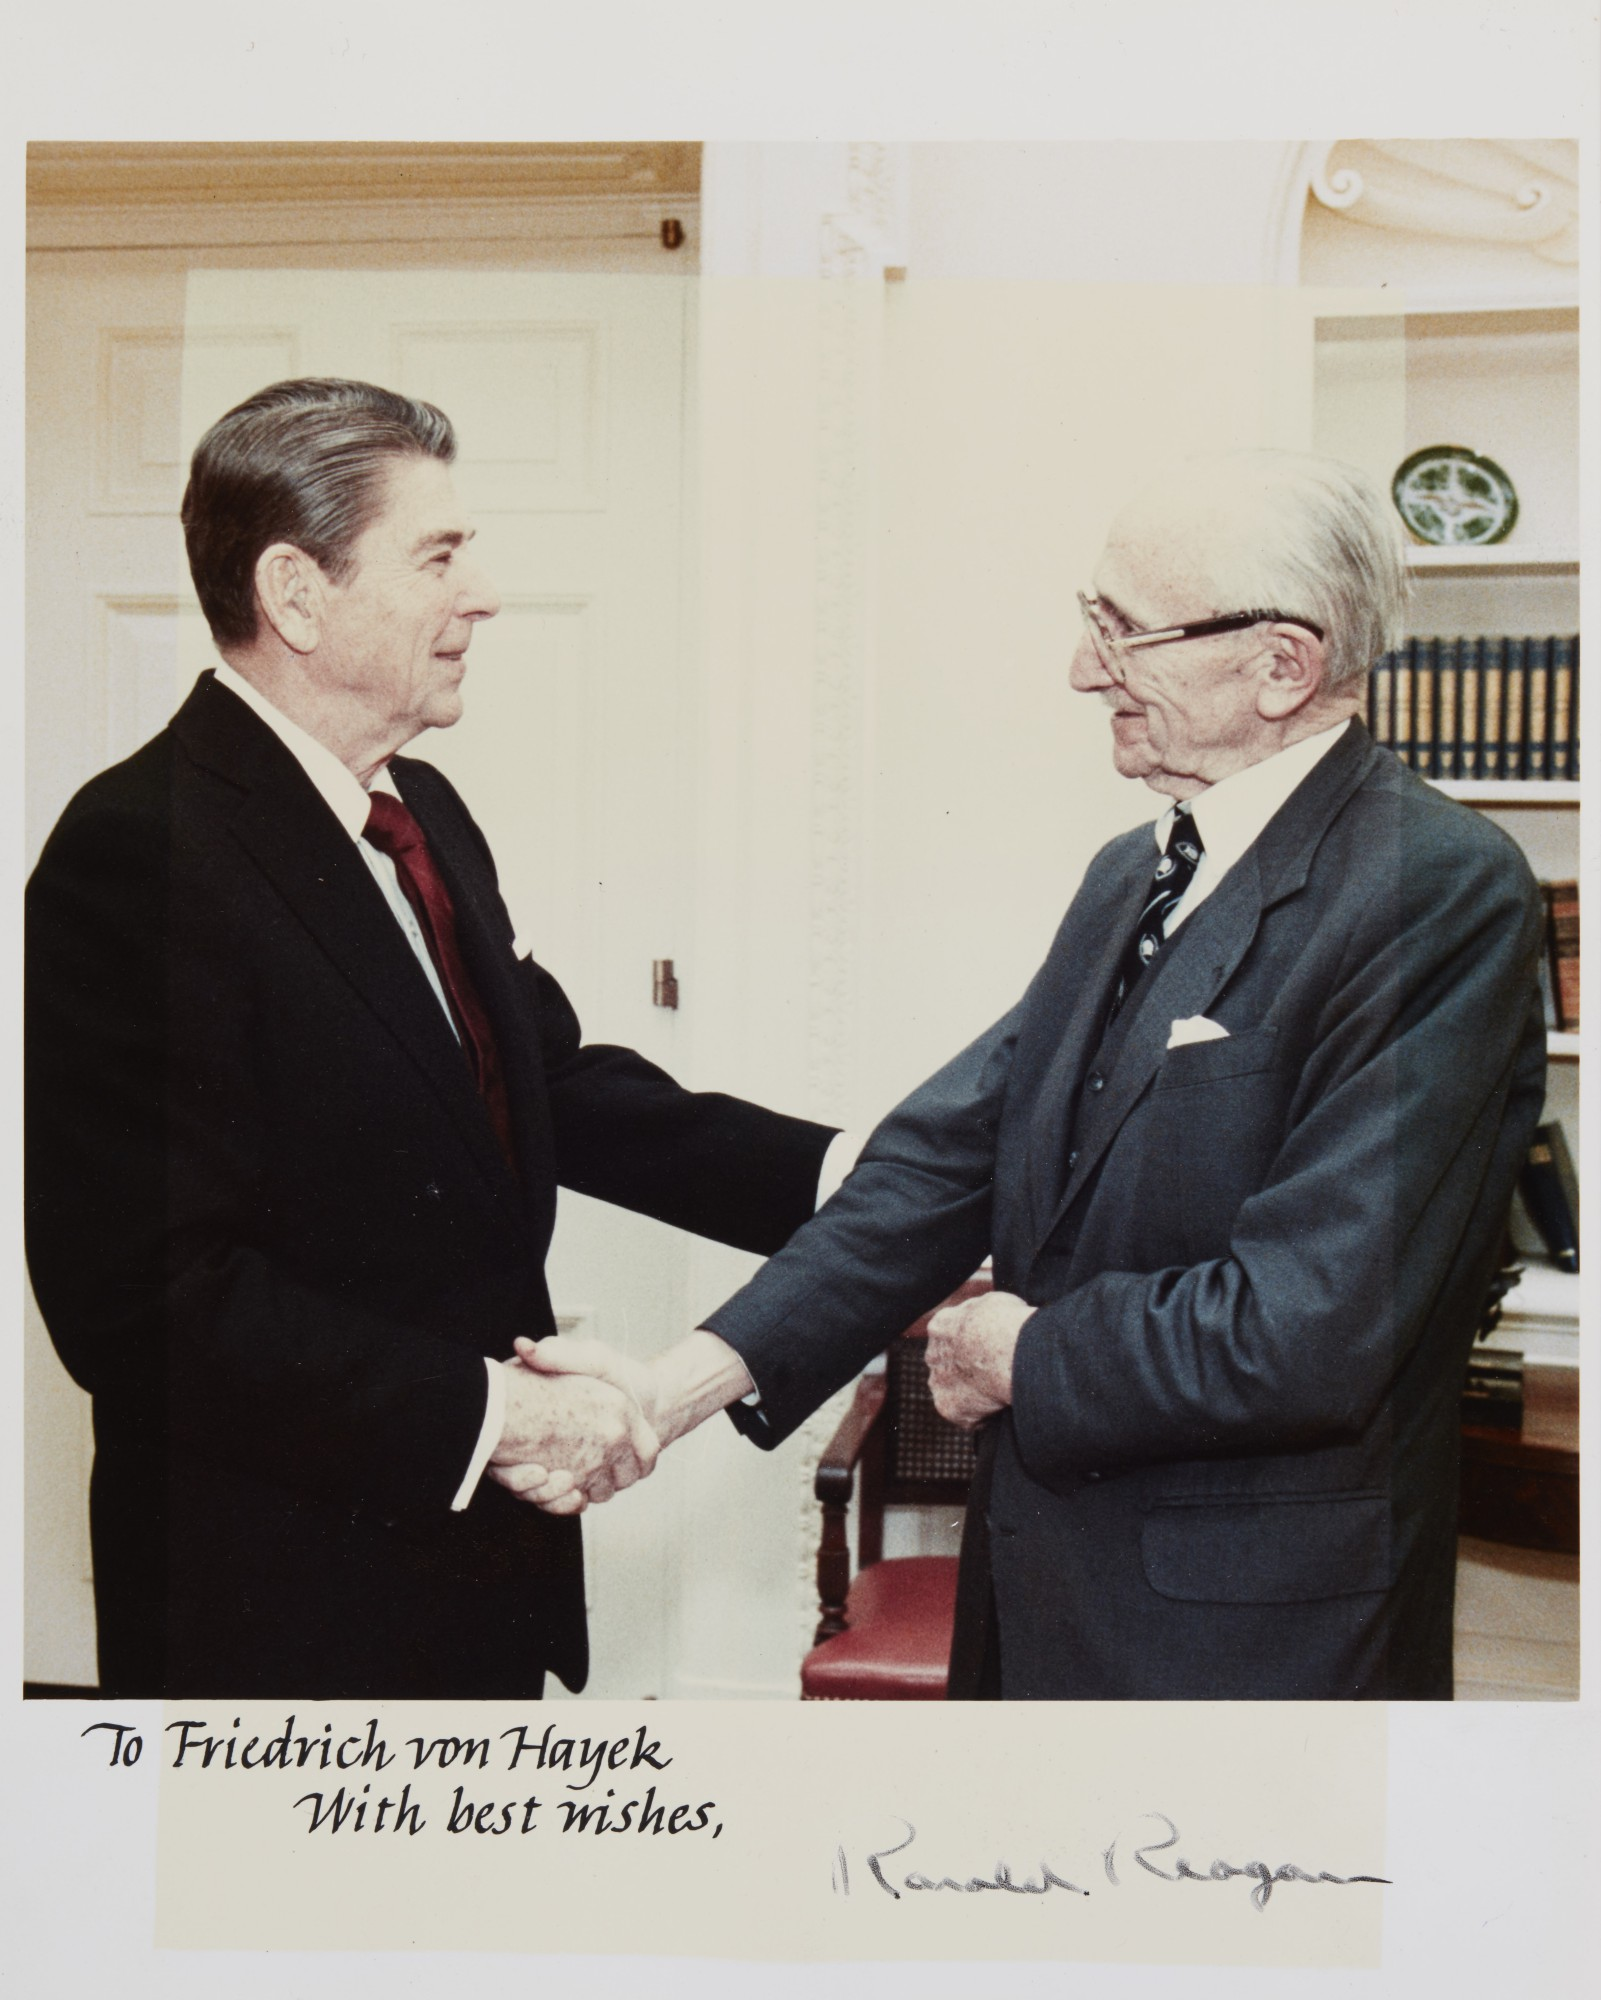 RONALD REAGAN, SIGNED PHOTOGRAPH OF THE PRESIDENT AND HAYEK, [1983]